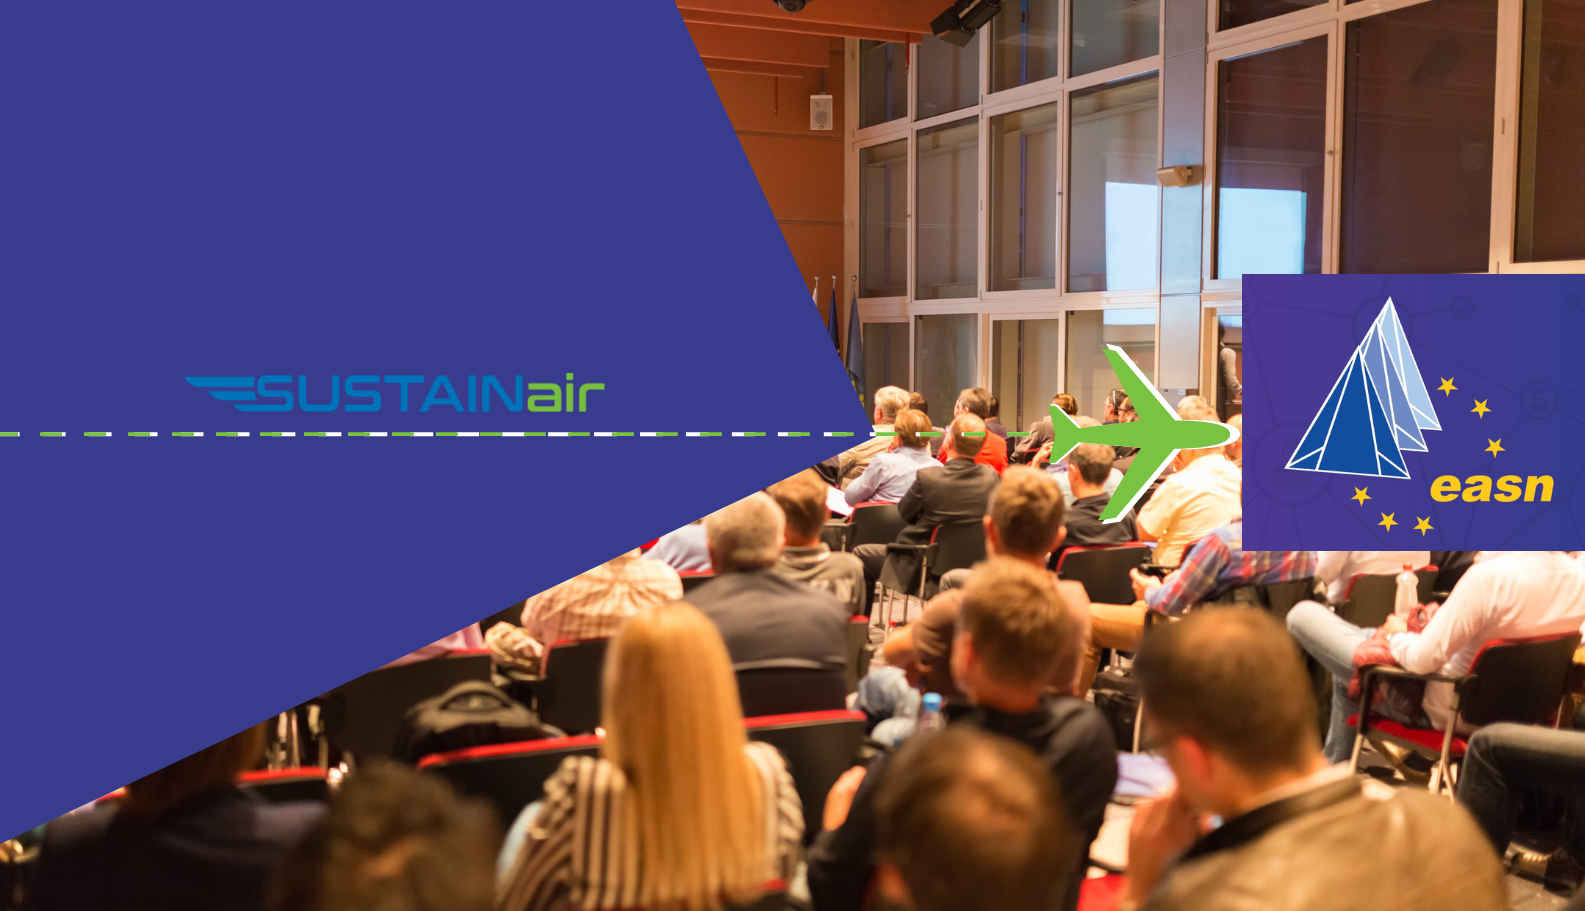 SUSTAINair at 11th EASN conference with Christoph Kralovec for intelligent aircraft